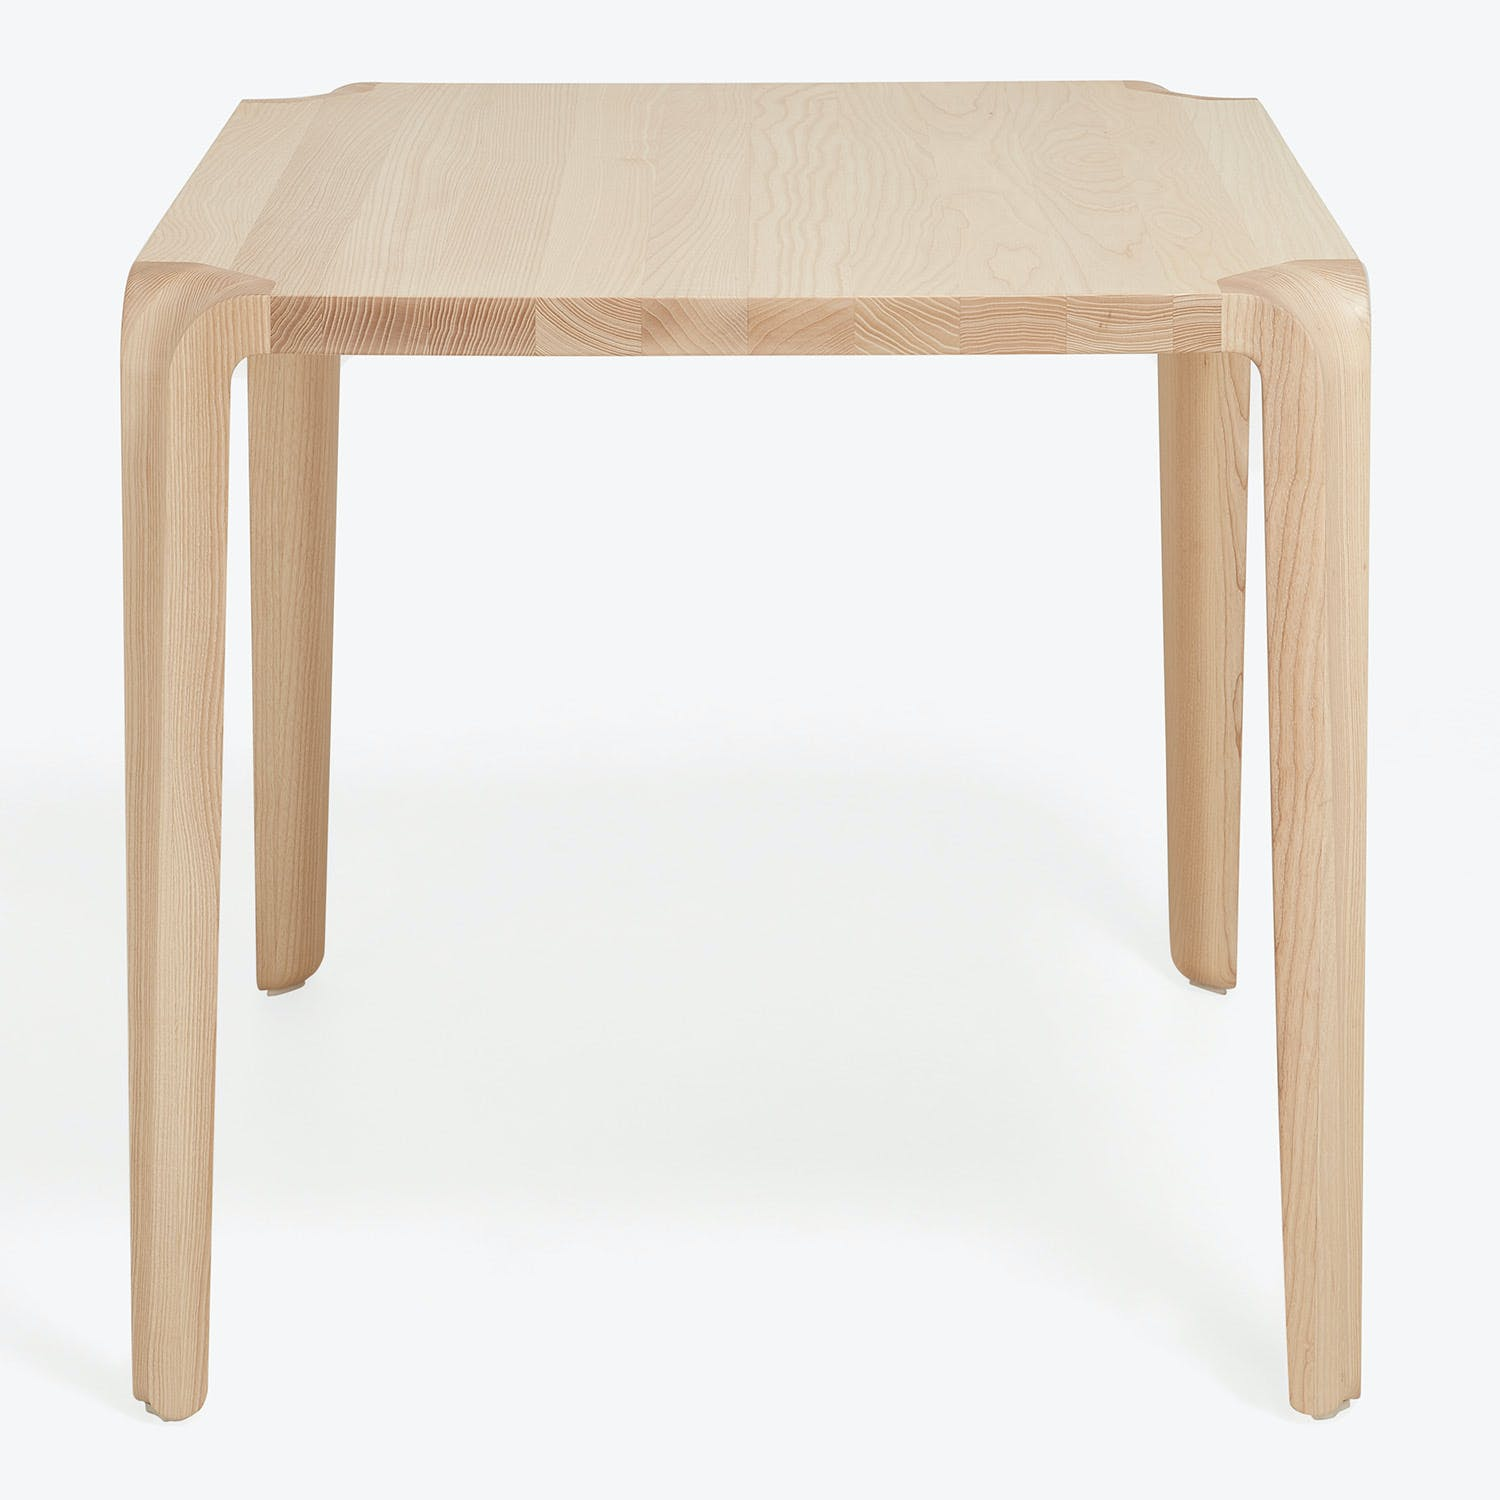 Product Image - Cadence Square Dining Table